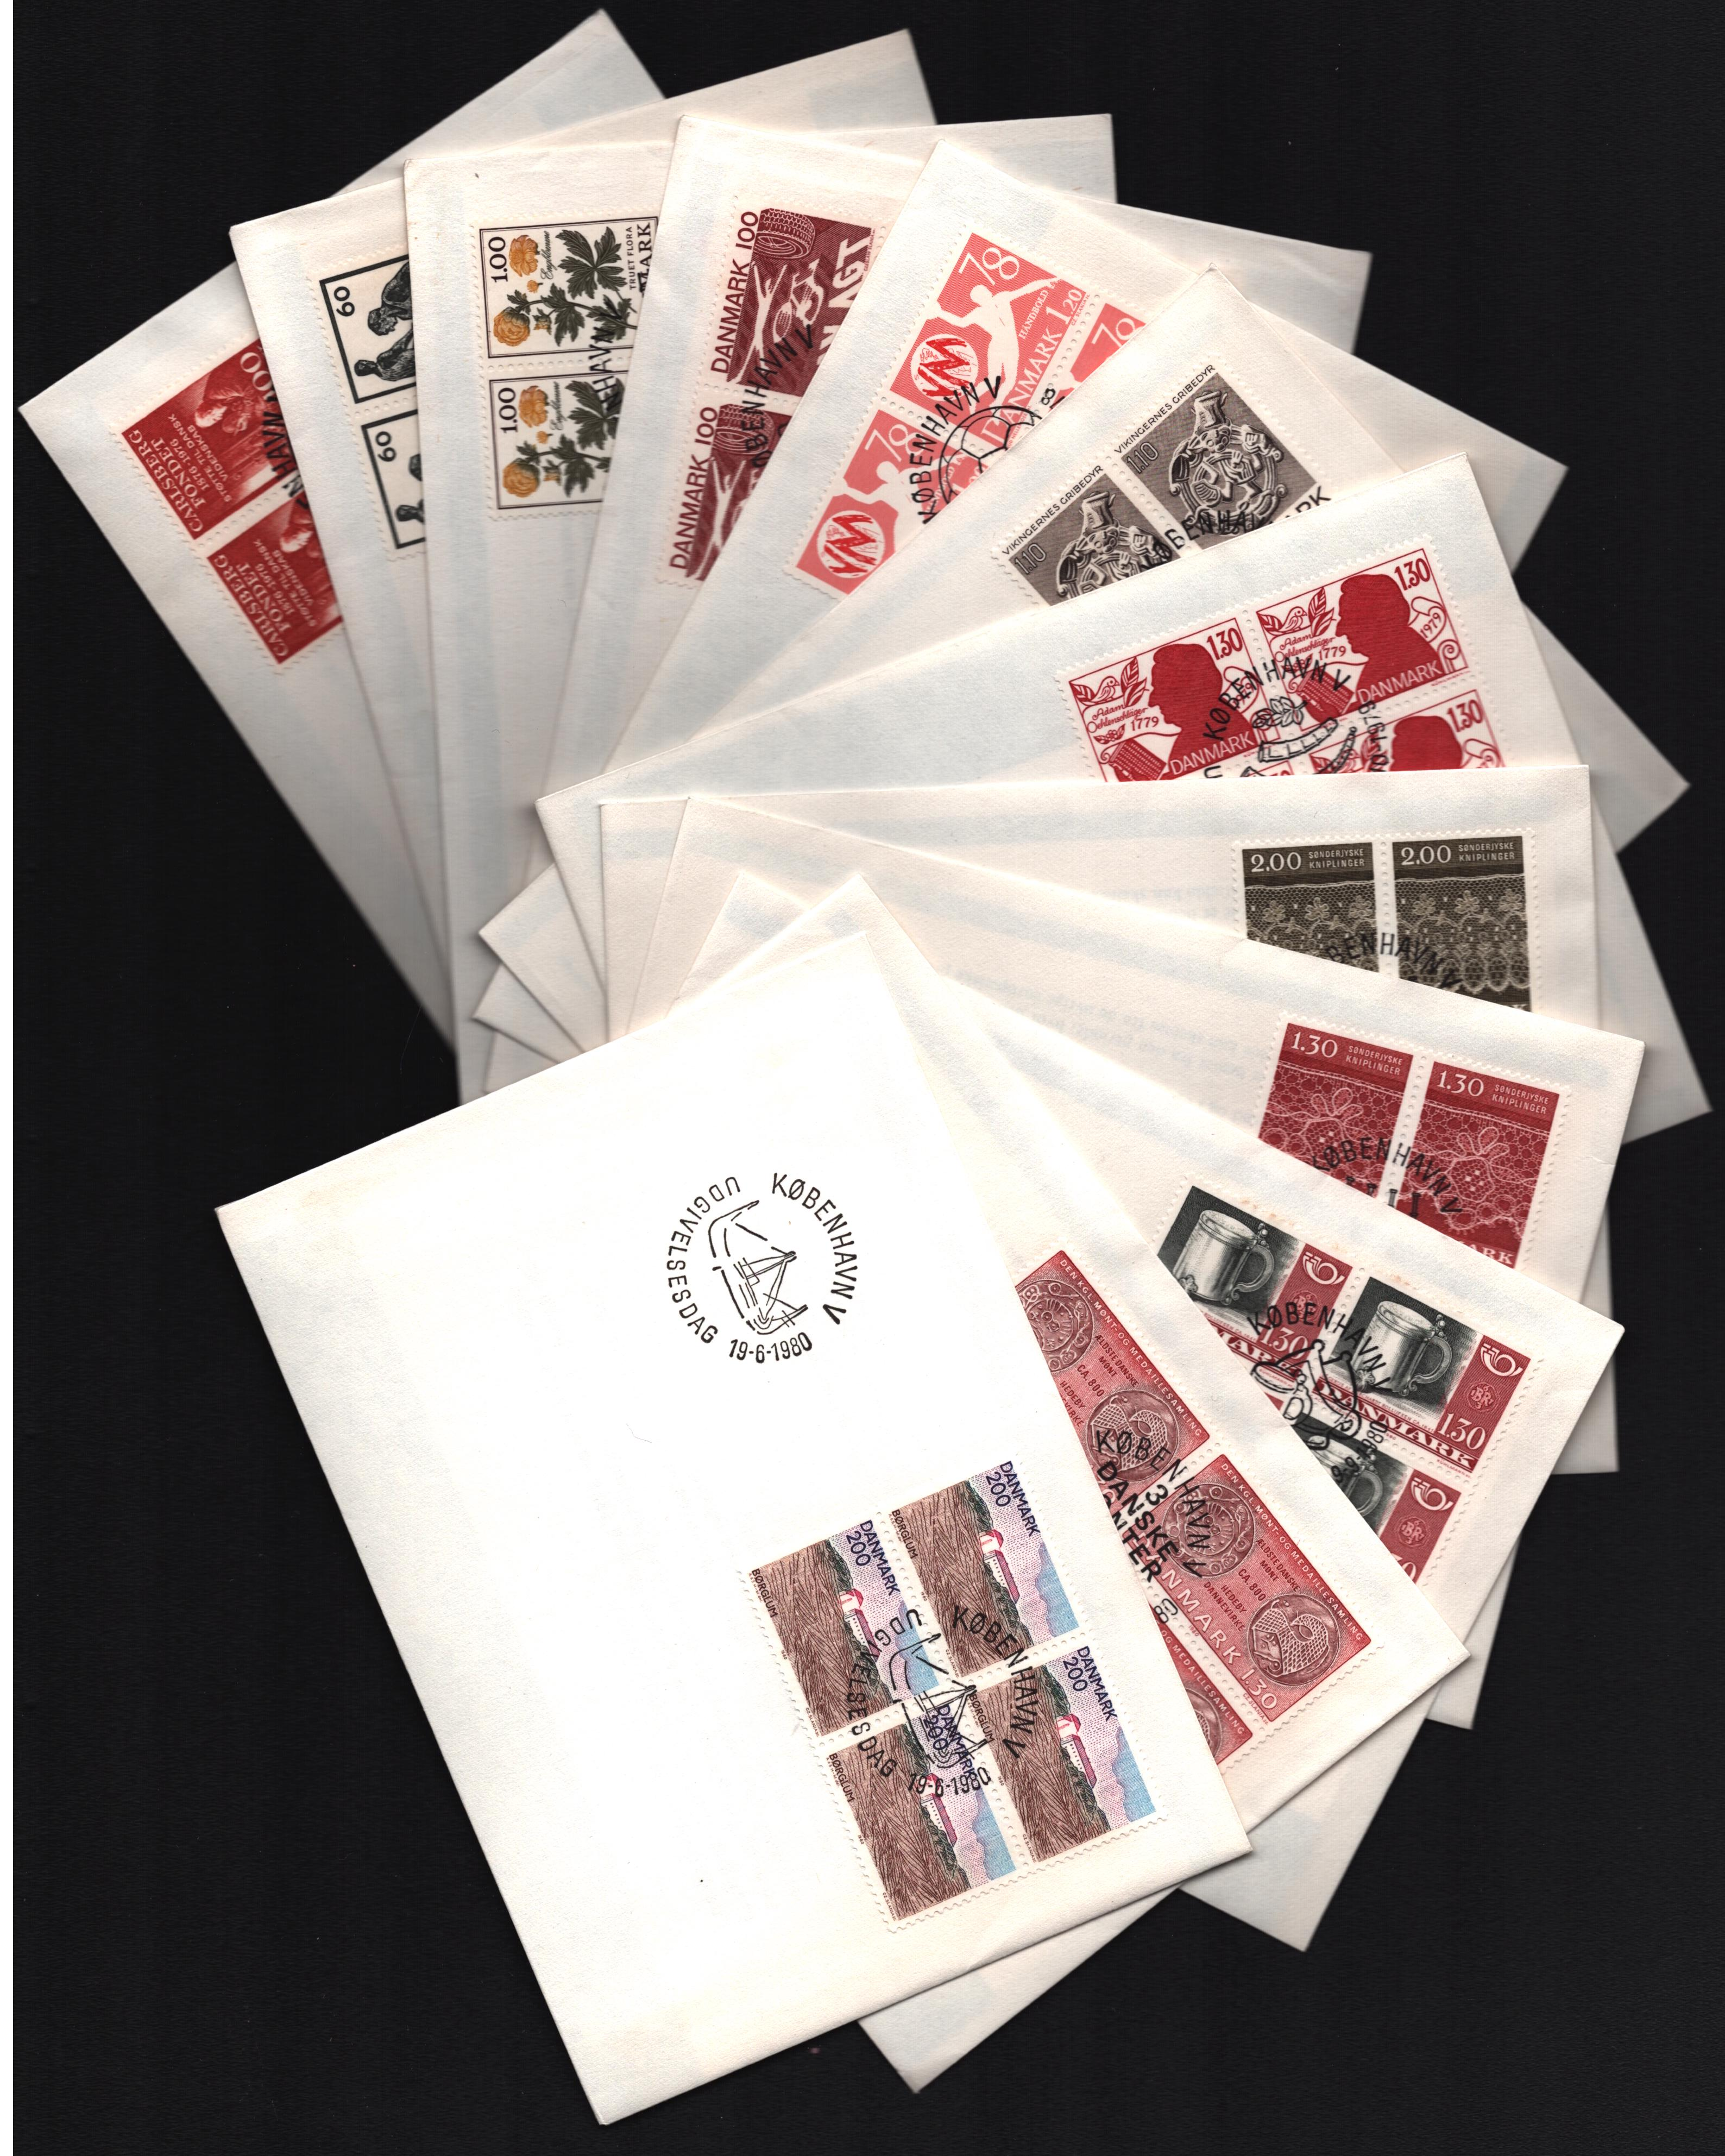 Danish FDC collection. 1976/1989. 42 covers. Good condition. We combine postage on multiple